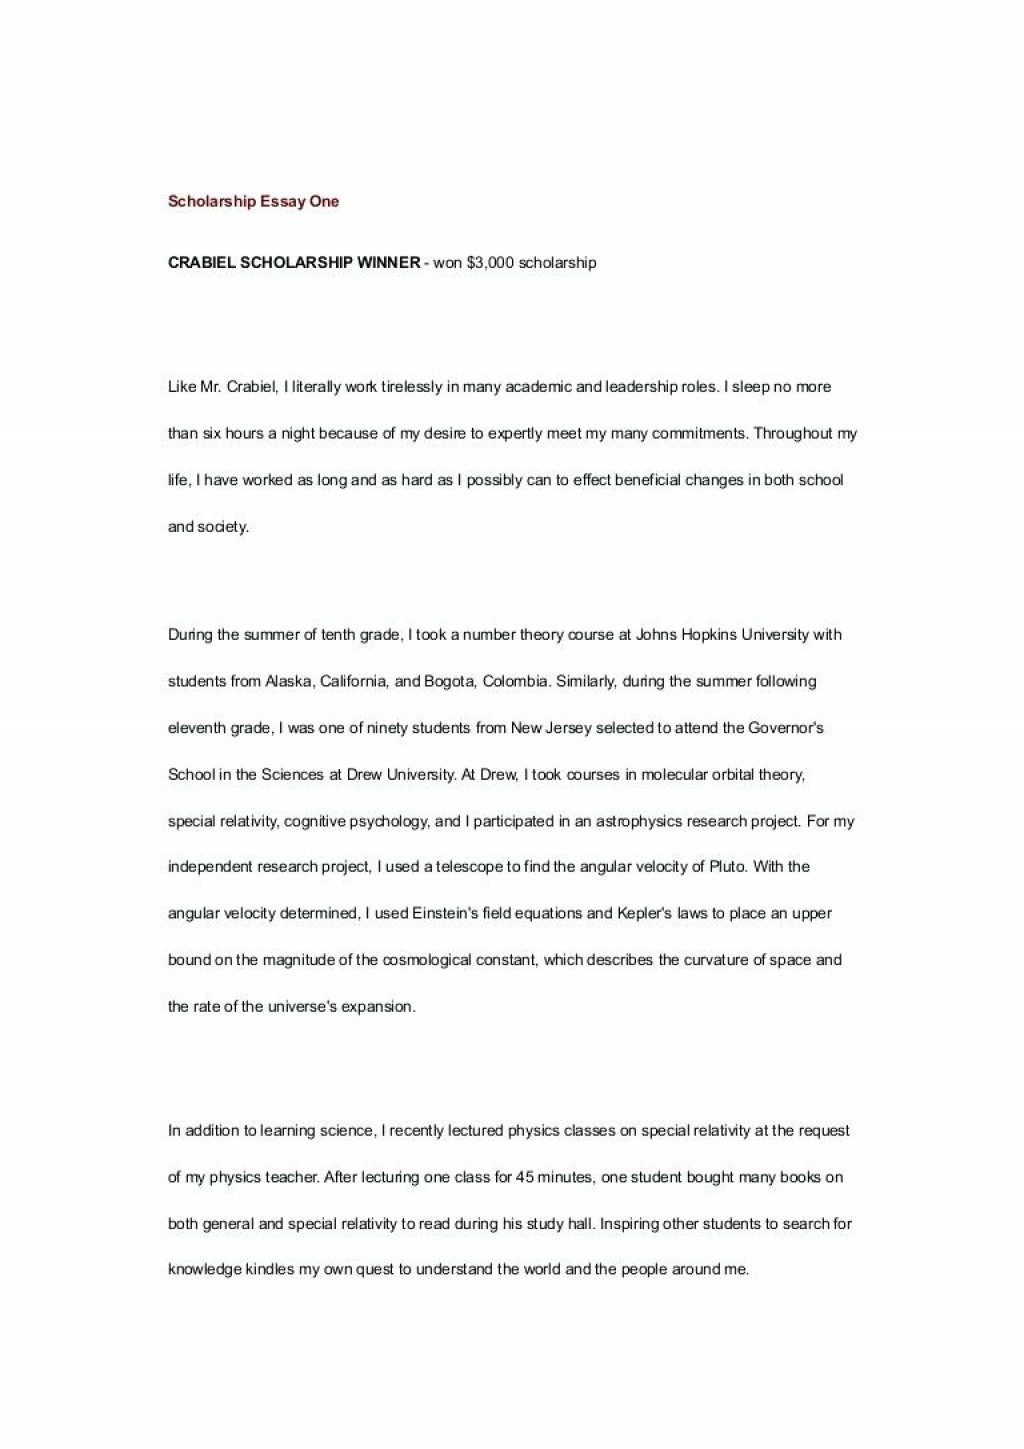 010 Essay Example No Scholarship College Application Template Legit Resume Cover Letter Thumbnail For Sample Wondrous Scholarships High School Seniors 2019 Large